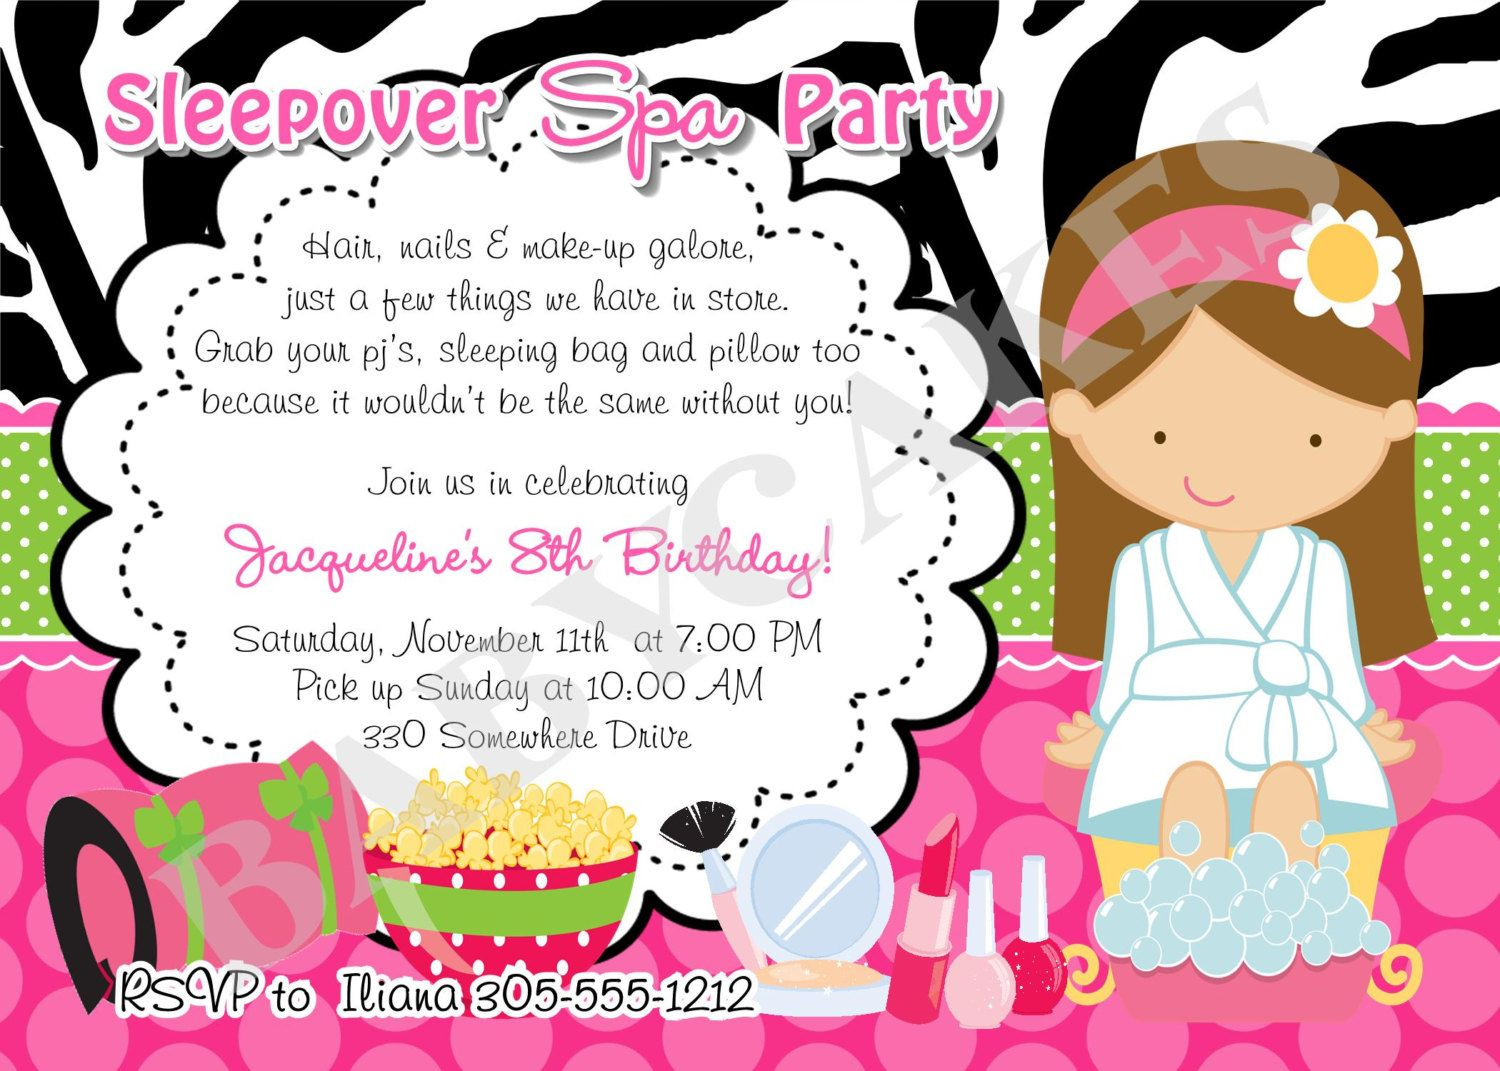 Sleepover spa party birthday invitation print your own matching sleepover spa party birthday invitation print your own matching party printables available filmwisefo Image collections